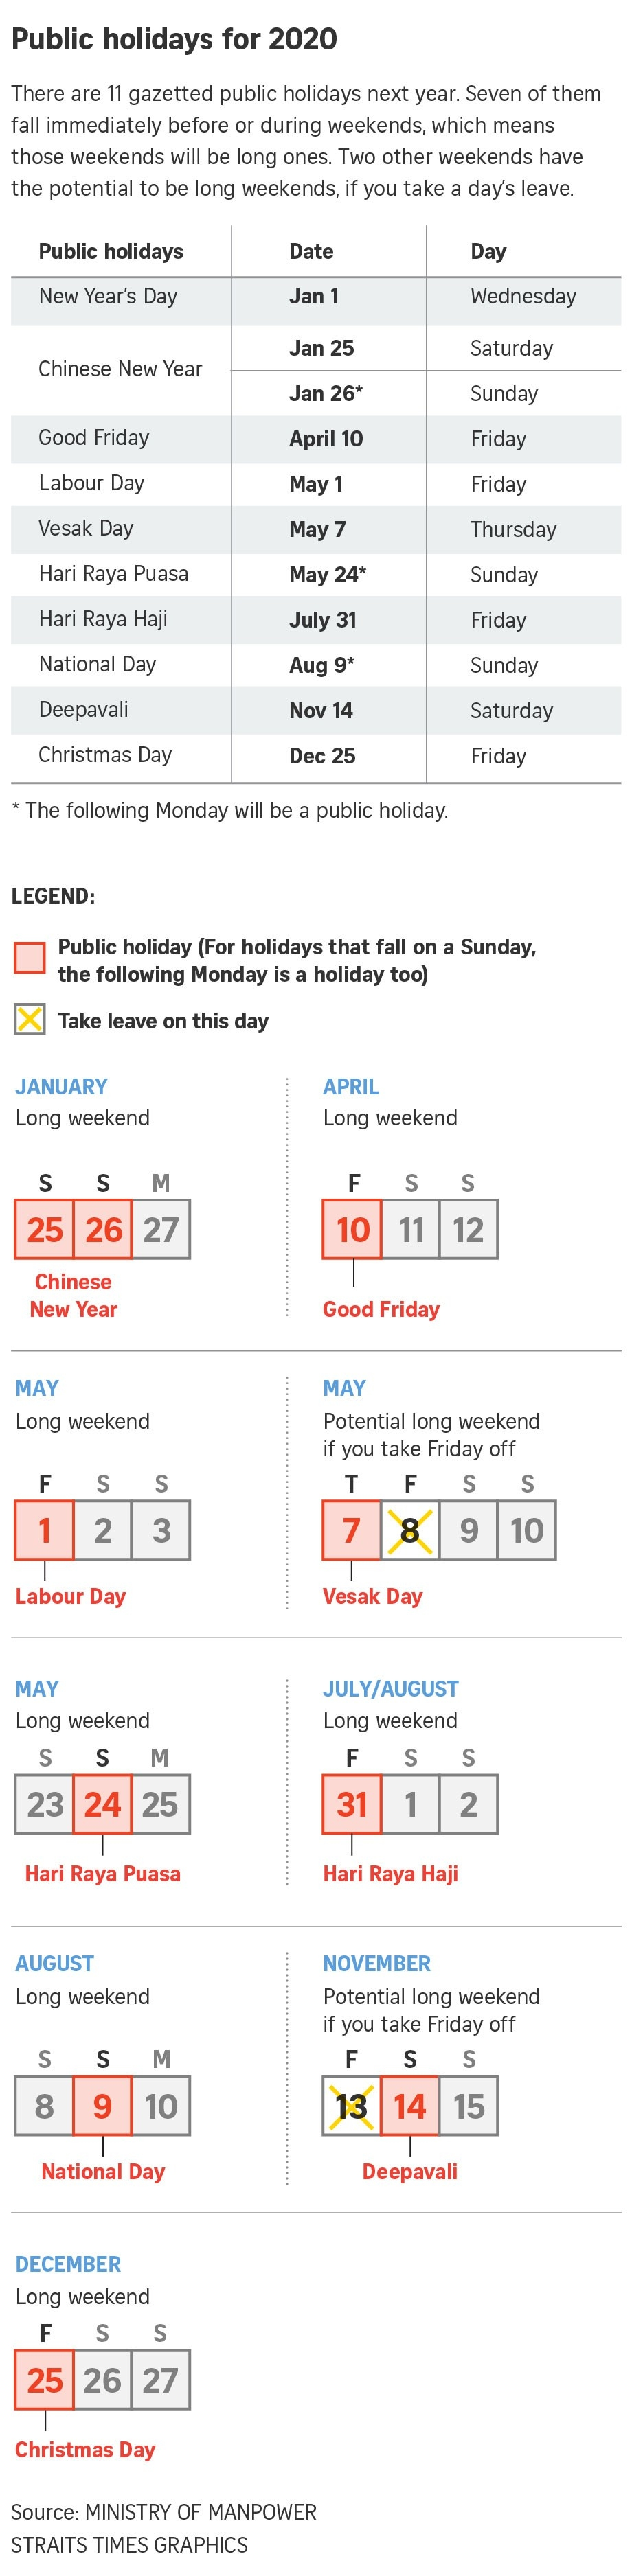 Public Holidays In 2020: Singapore To Have 7 Long Weekends-Food National Holidays 2020